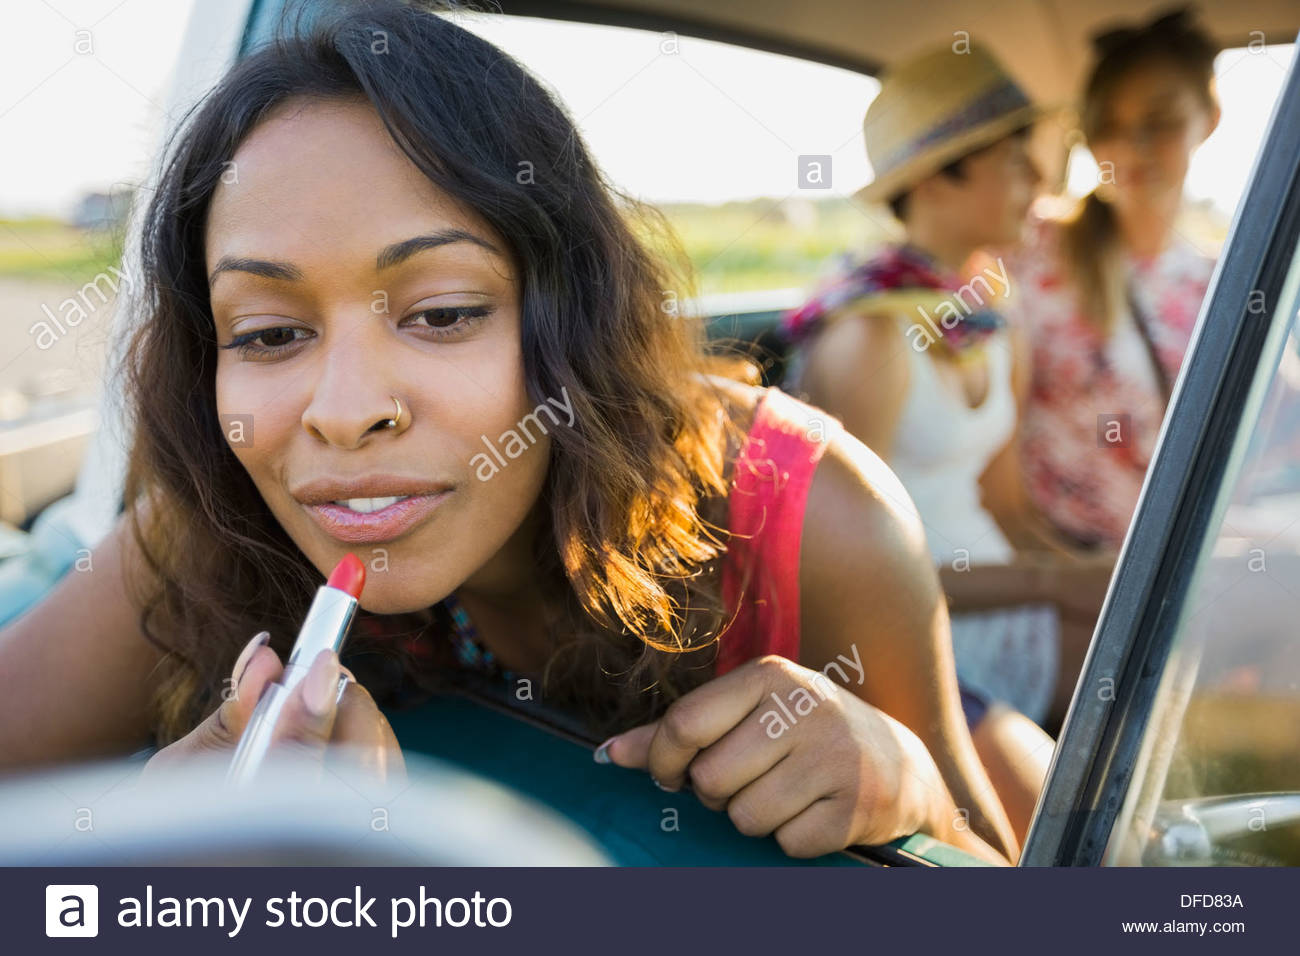 Woman applying lipstick in rear view mirror - Stock Image